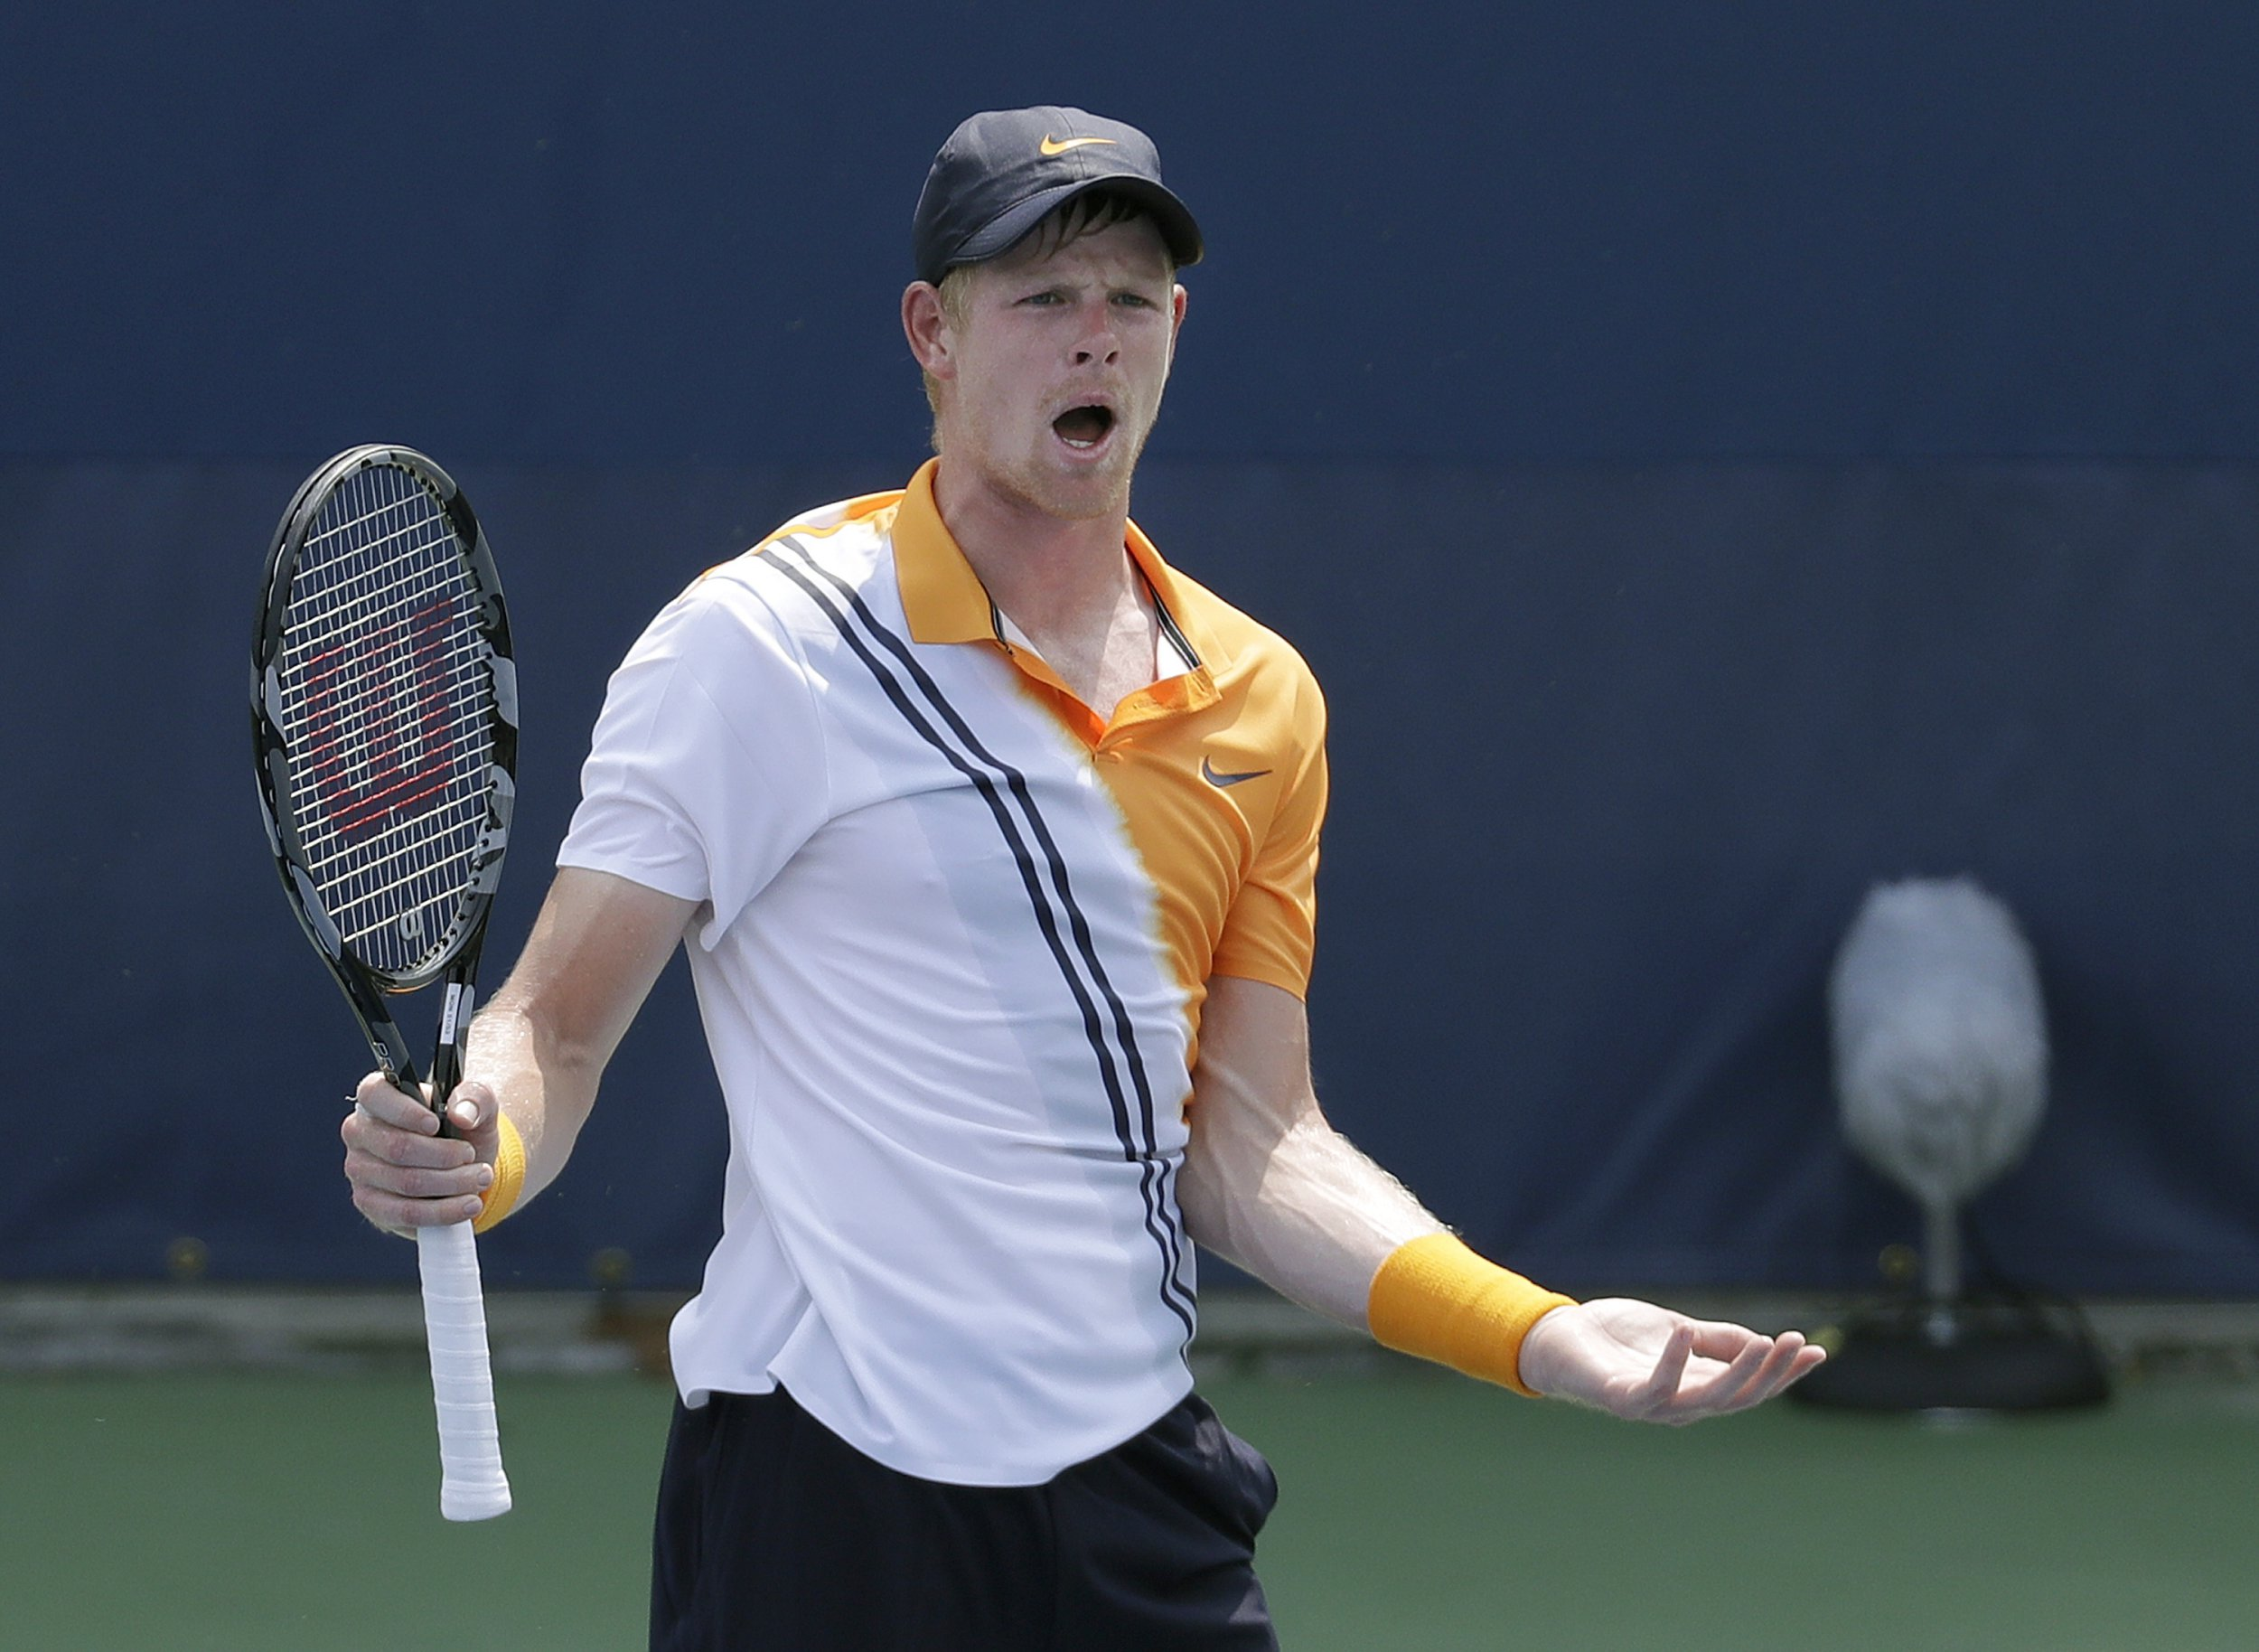 Kyle Edmund suffers early US Open exit amid physical struggles